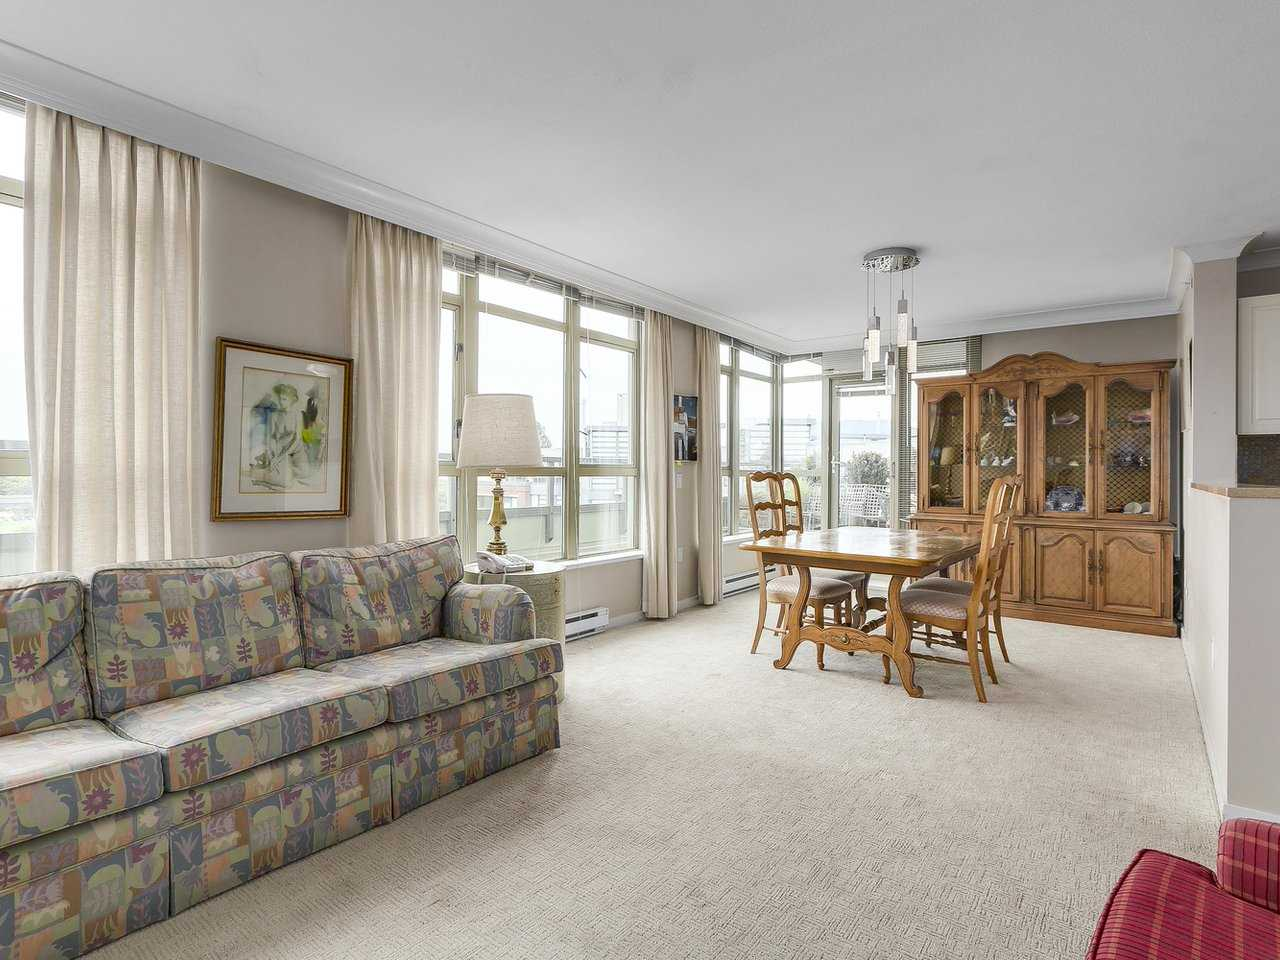 "Photo 3: 701 2799 YEW Street in Vancouver: Kitsilano Condo for sale in ""TAPESTRY AT ARBUTUS WALK (O'Keefe)"" (Vancouver West)  : MLS(r) # R2178410"